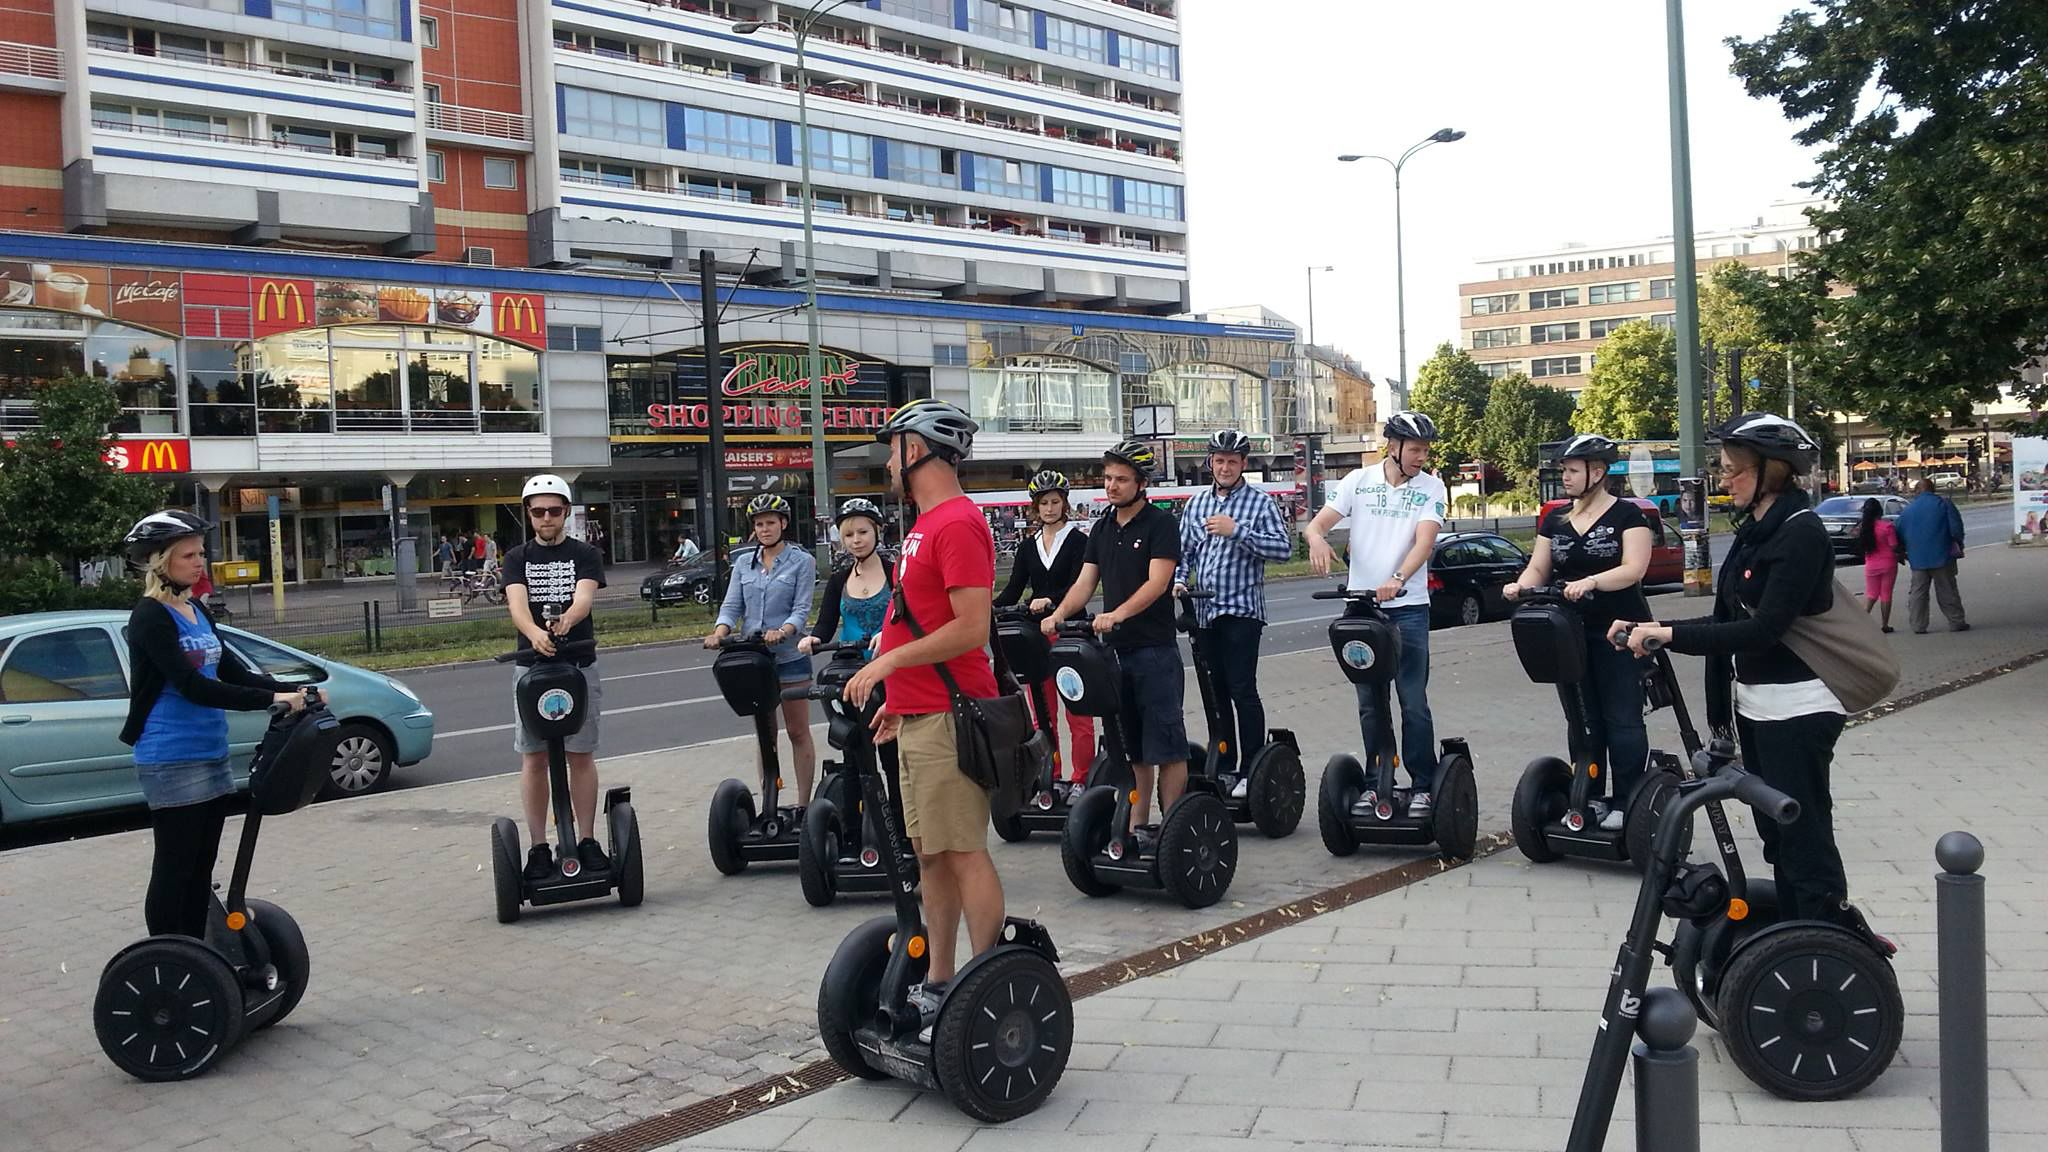 Segway tour group listening to their guide in Berlin